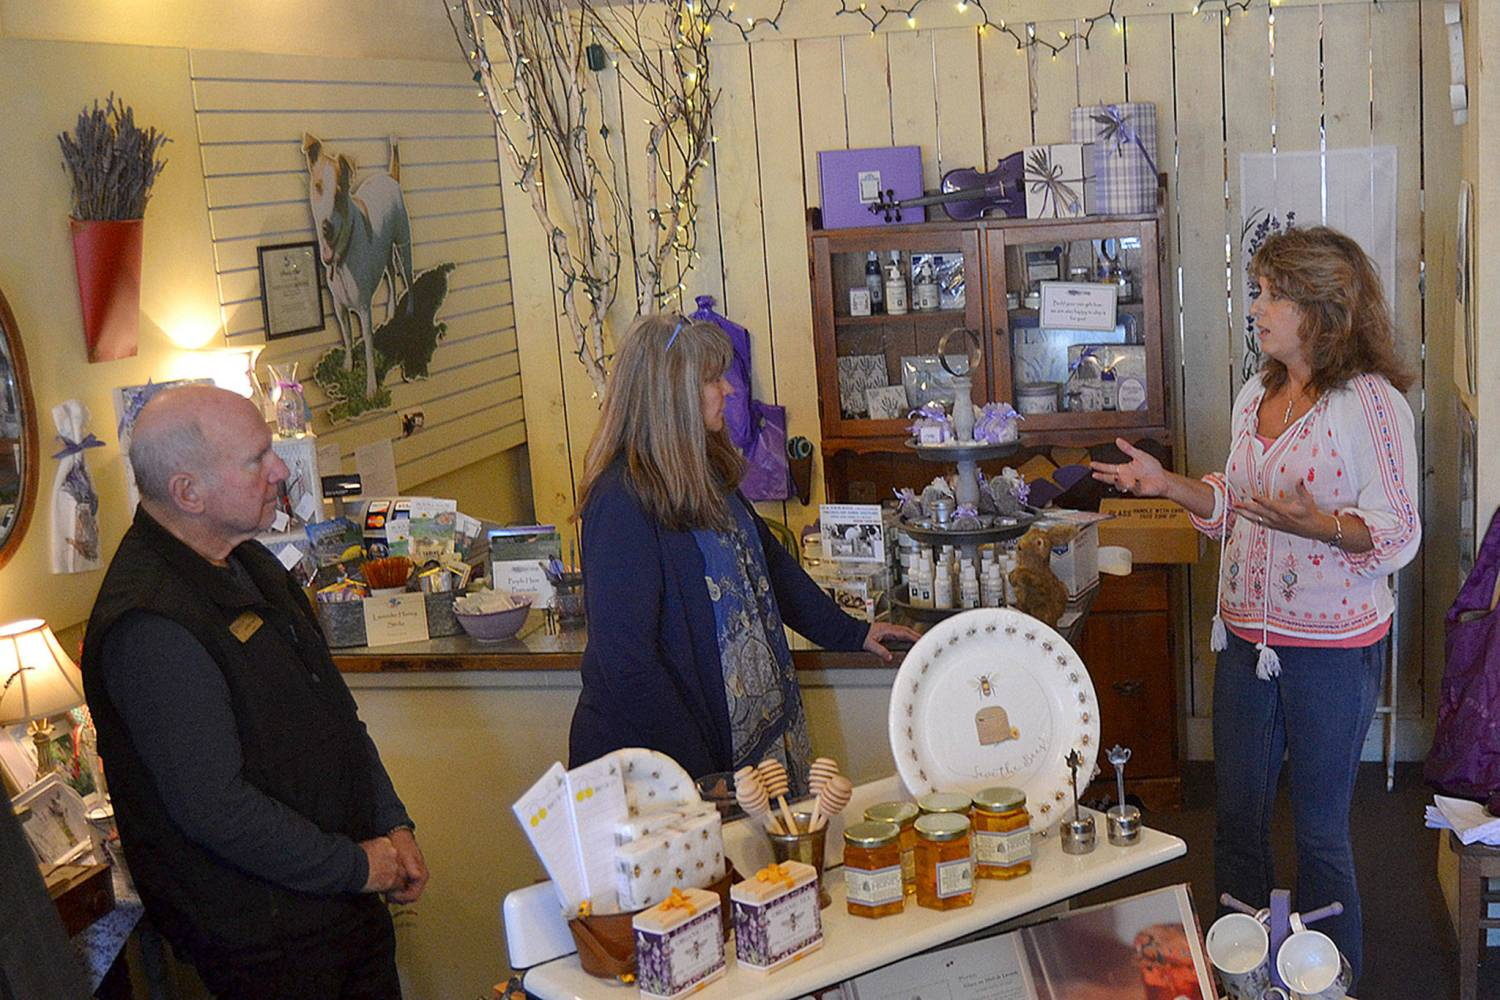 Vickie Oen, general manager of Purple Haze Lavender Shop, speaks to Sequim Mayor Dennis Smith and U.S. Small Business Administration Seattle District Director Kerrie Hurd about the growth of the farm and what led to the start of the shop. Smith and Hurd were part of a walking tour on March 28 to meet-and-greet with small businesses to hear concerns and share possible resources. Sequim Gazette photo by Matthew Nash